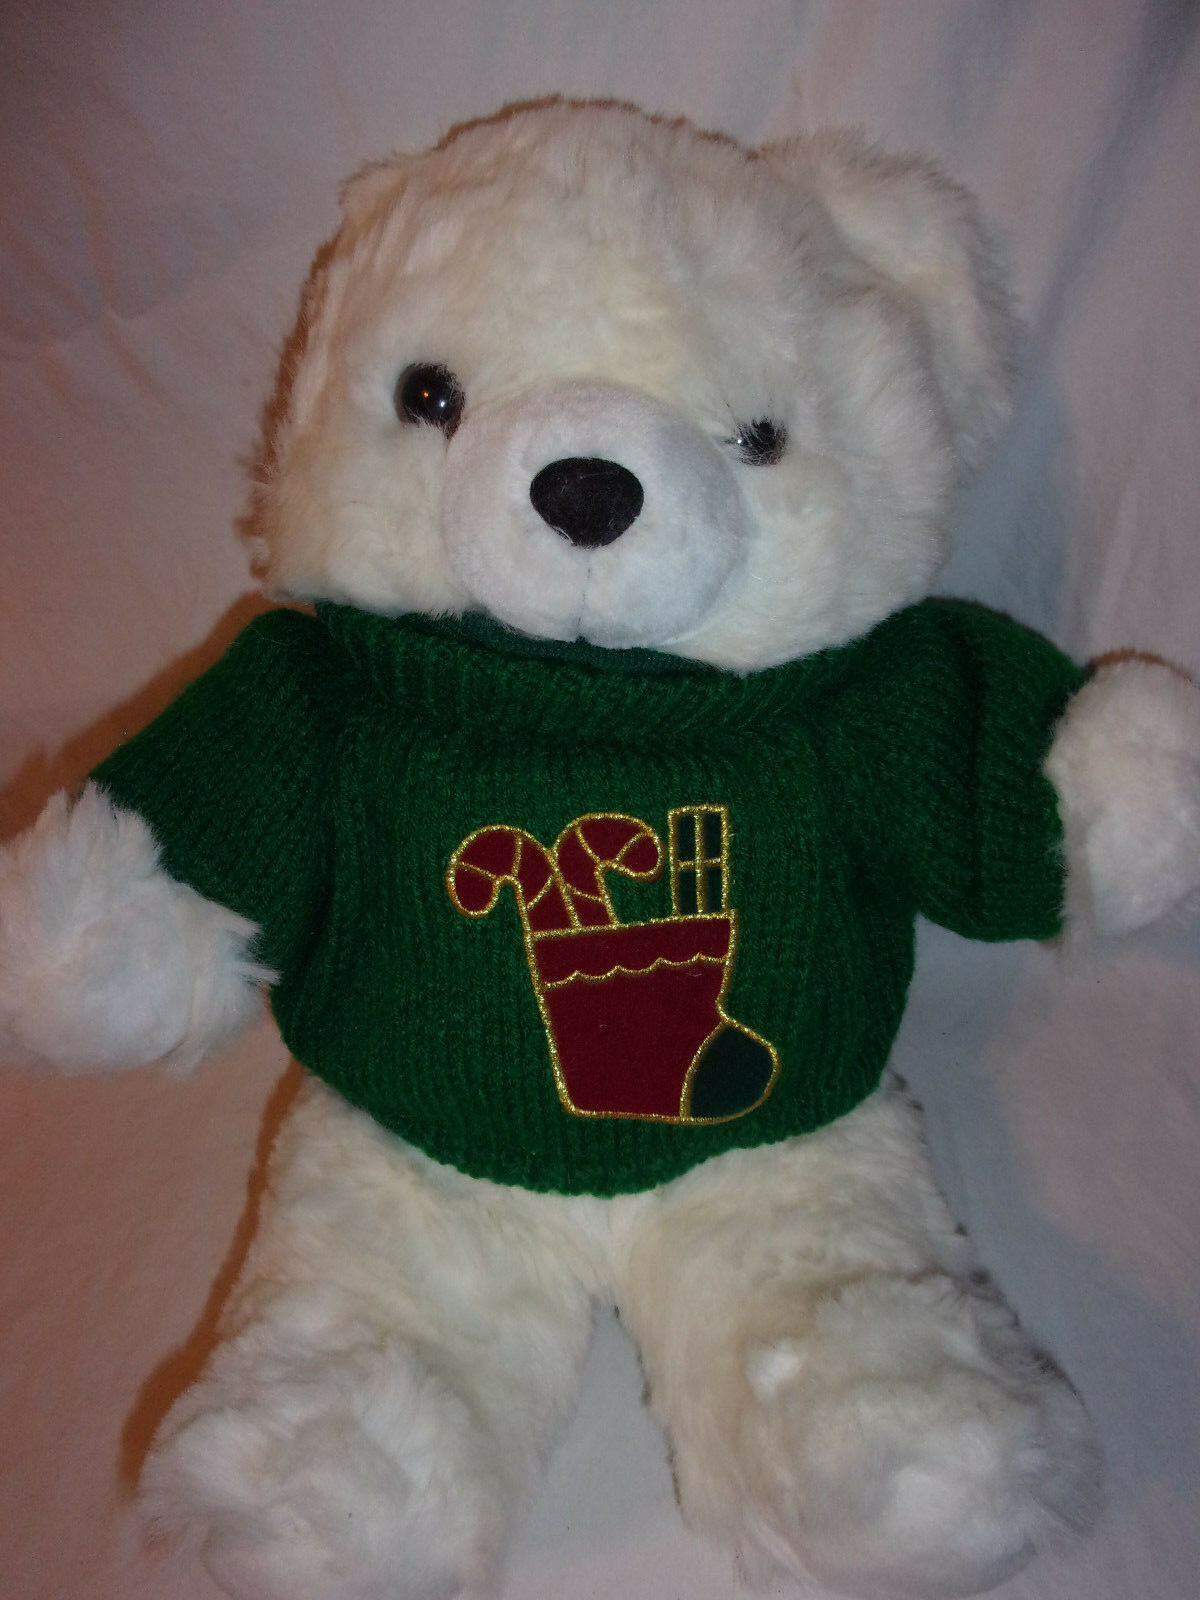 1997 Main Joy Holiday White Teddy Bear 19  Plush Soft Toy Stuffed Animal